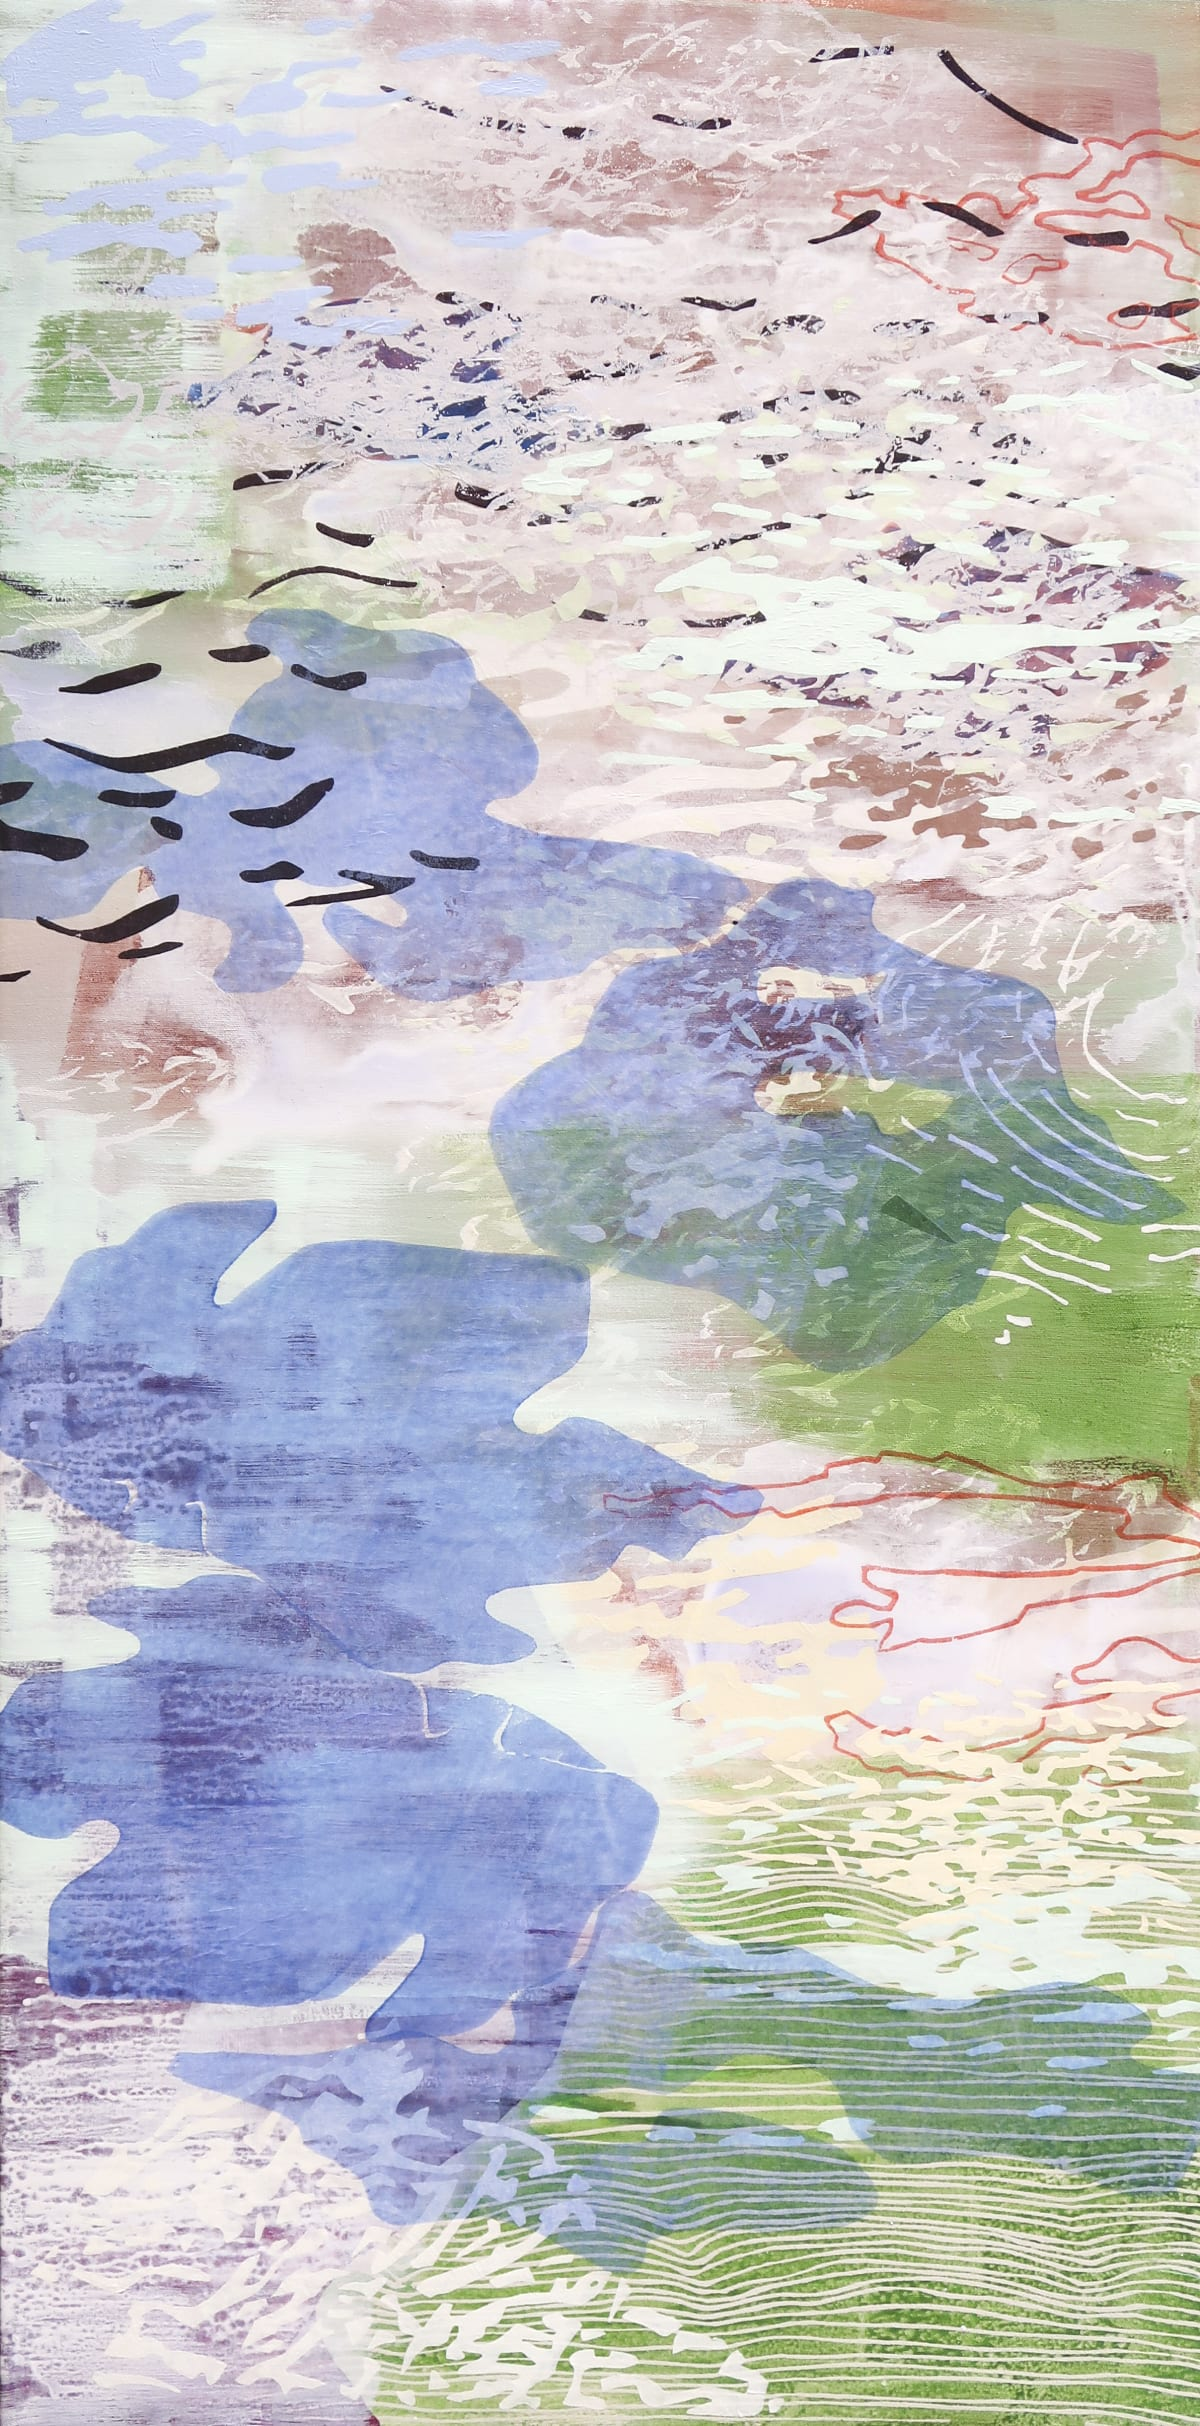 Laura Fayer Morning Bloom, 2019 acrylic and Japanese paper on canvas 48 x 24 in.